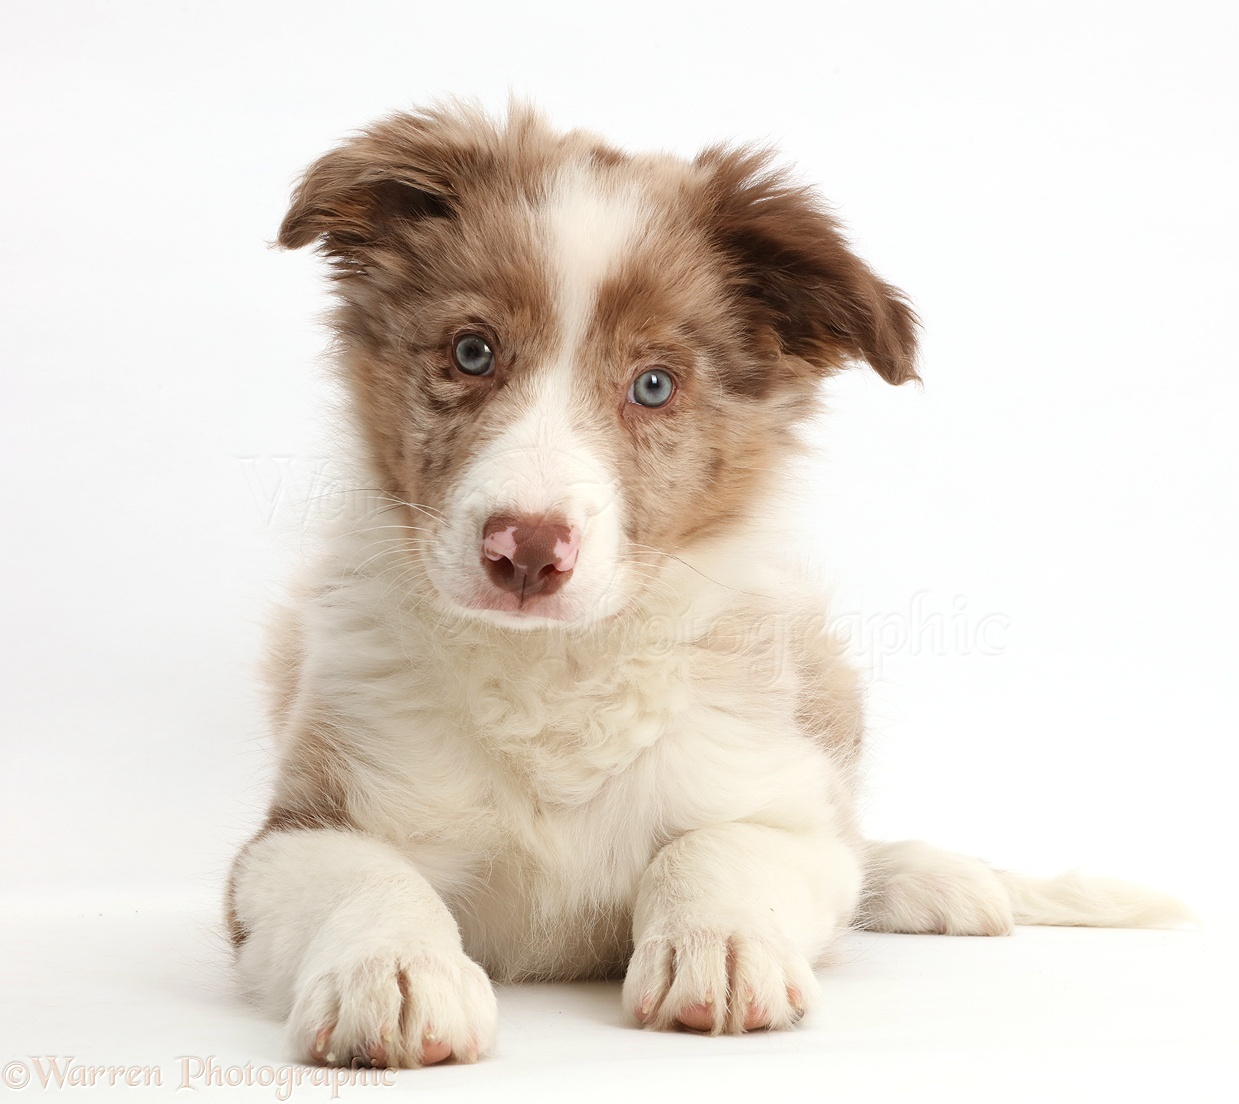 Dog Red Merle Border Collie Puppy Photo Wp44147